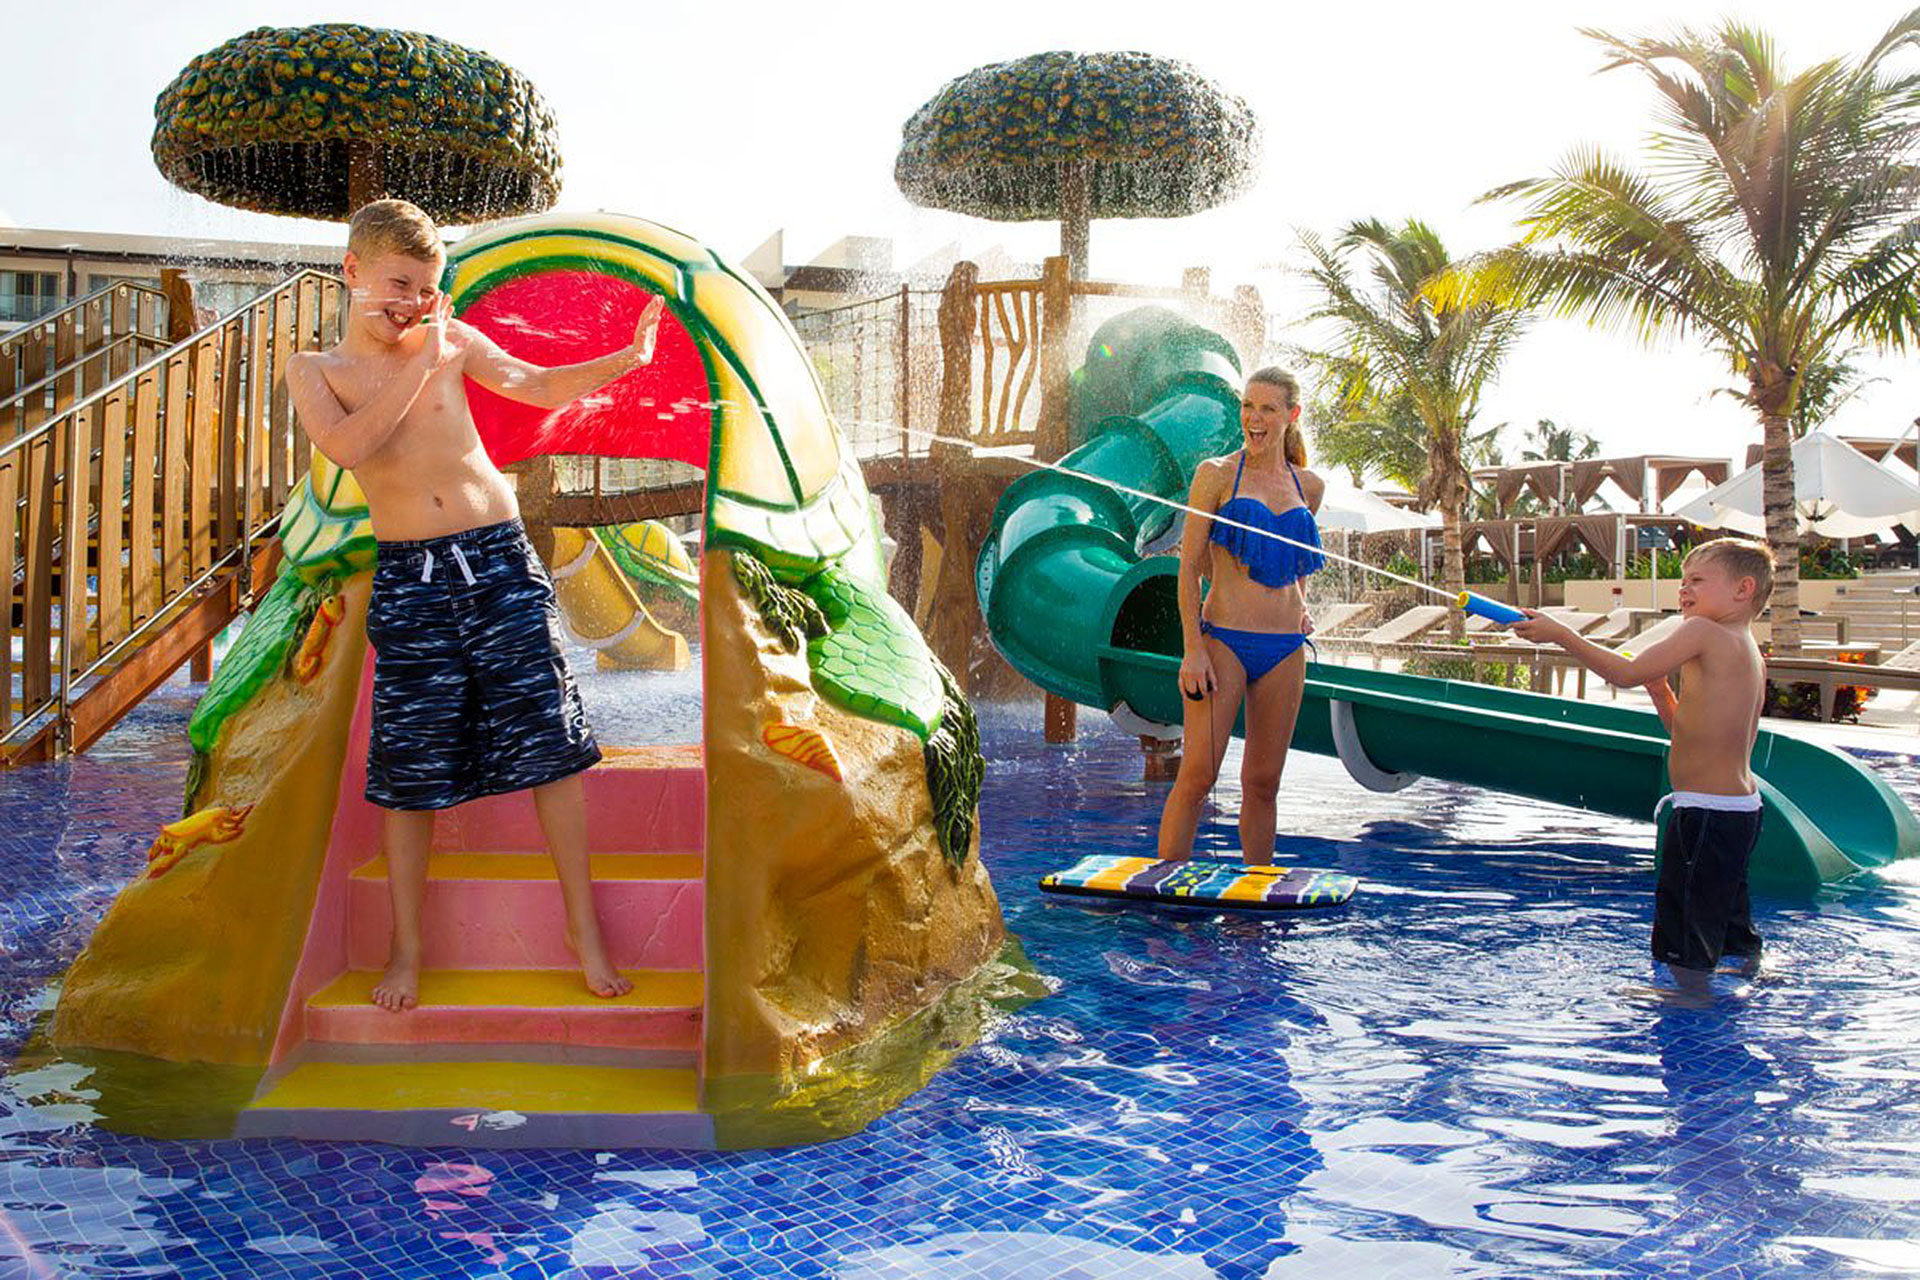 Water Park at Royalton Riviera Cancun; Courtesy of Royalton Riviera Cancun